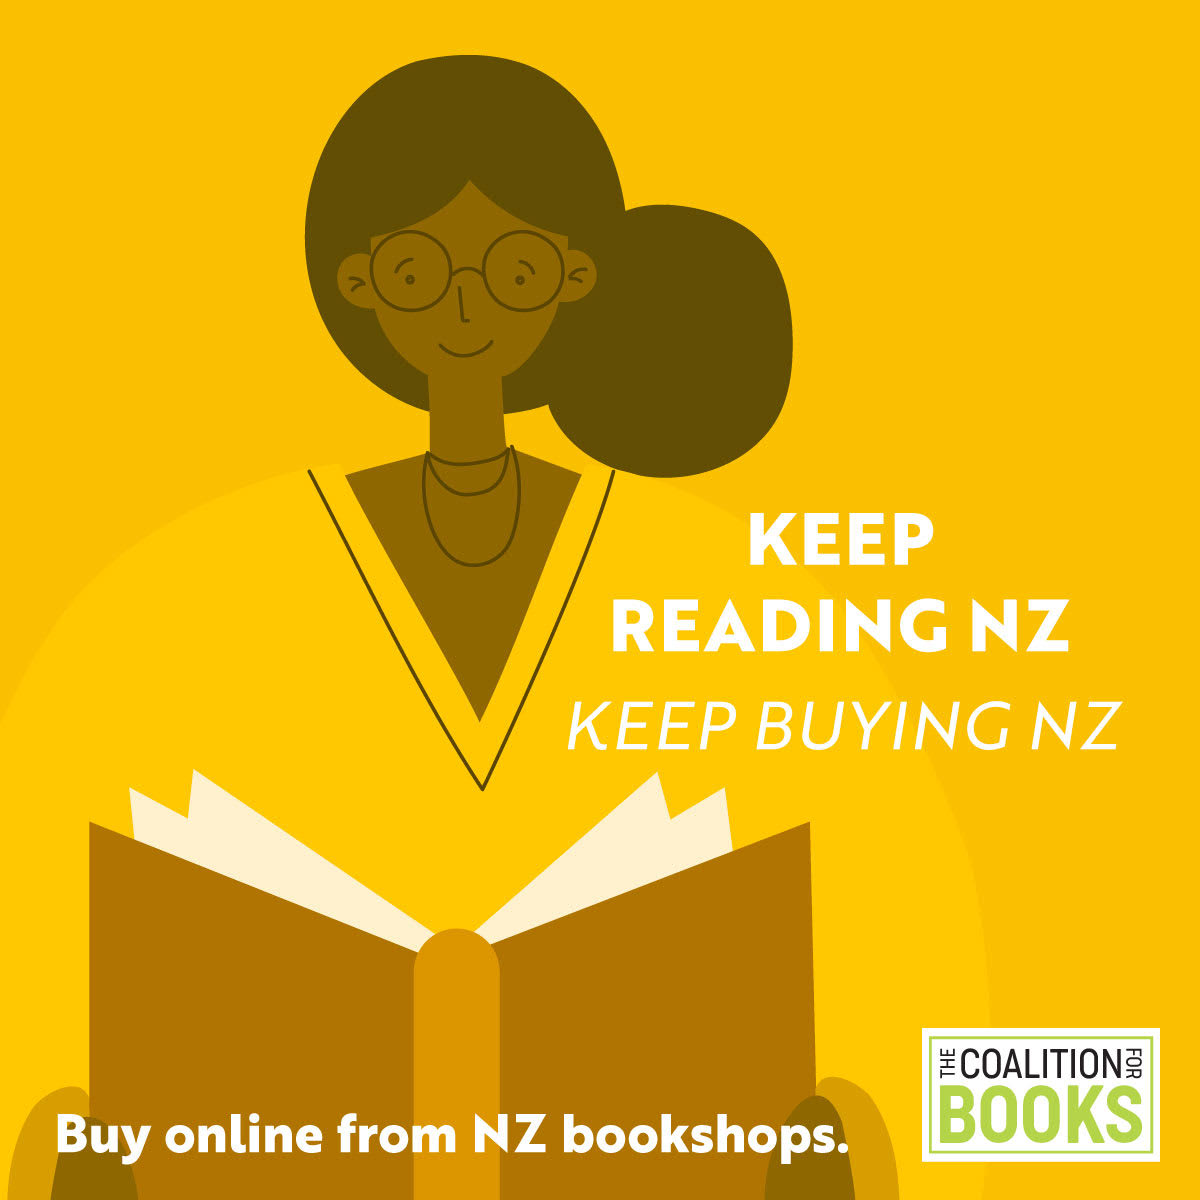 keep-reading-nz-keep-buying-nz.jpg